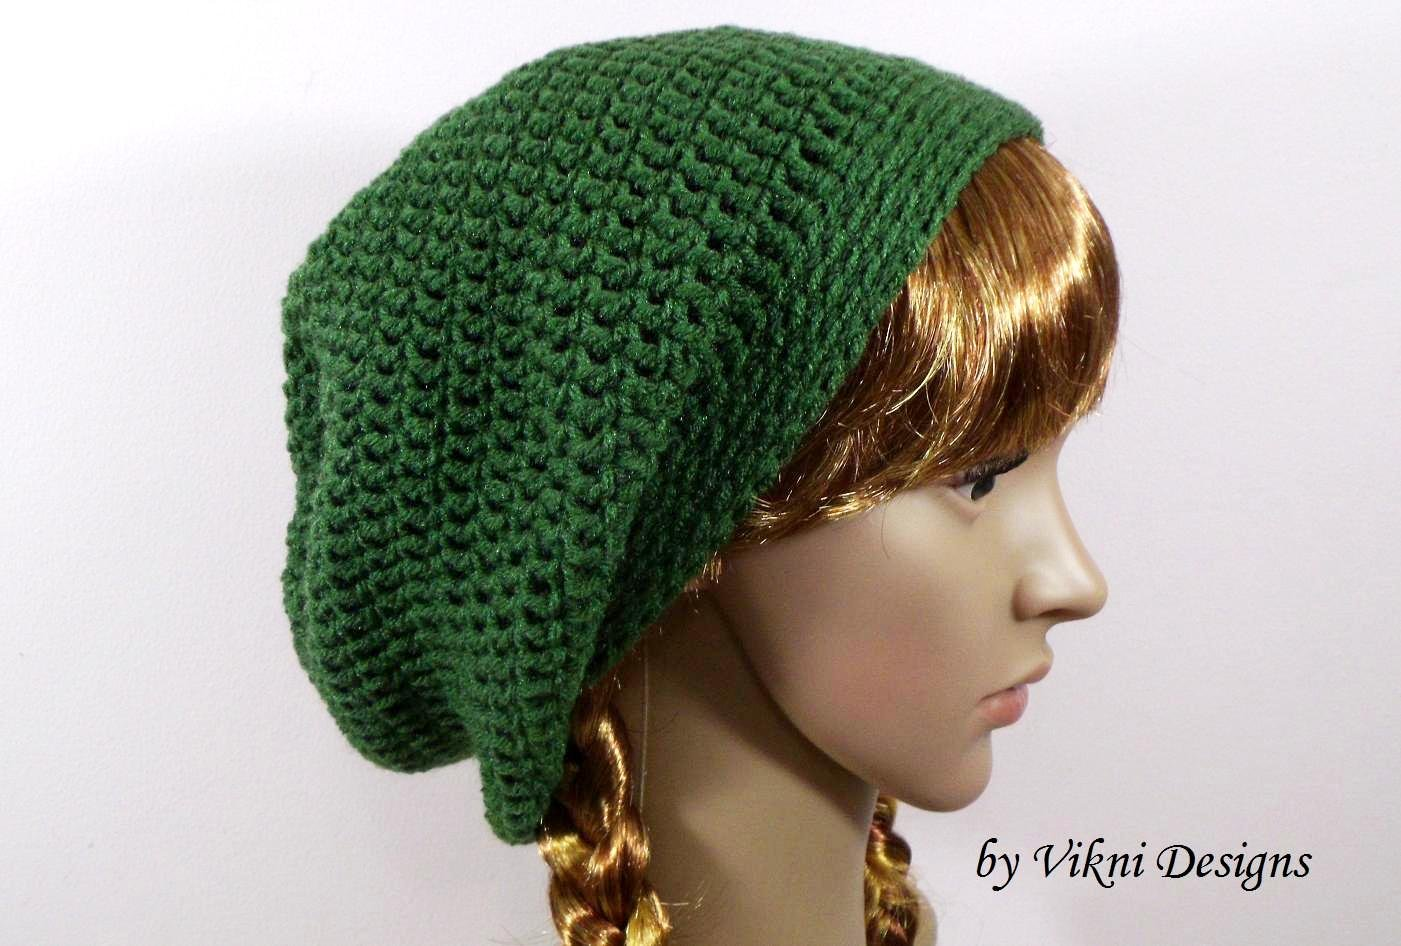 Green Slouchy Crochet Hat Beanie, Womens Slouchy Hat by Vikni Crochet Designs